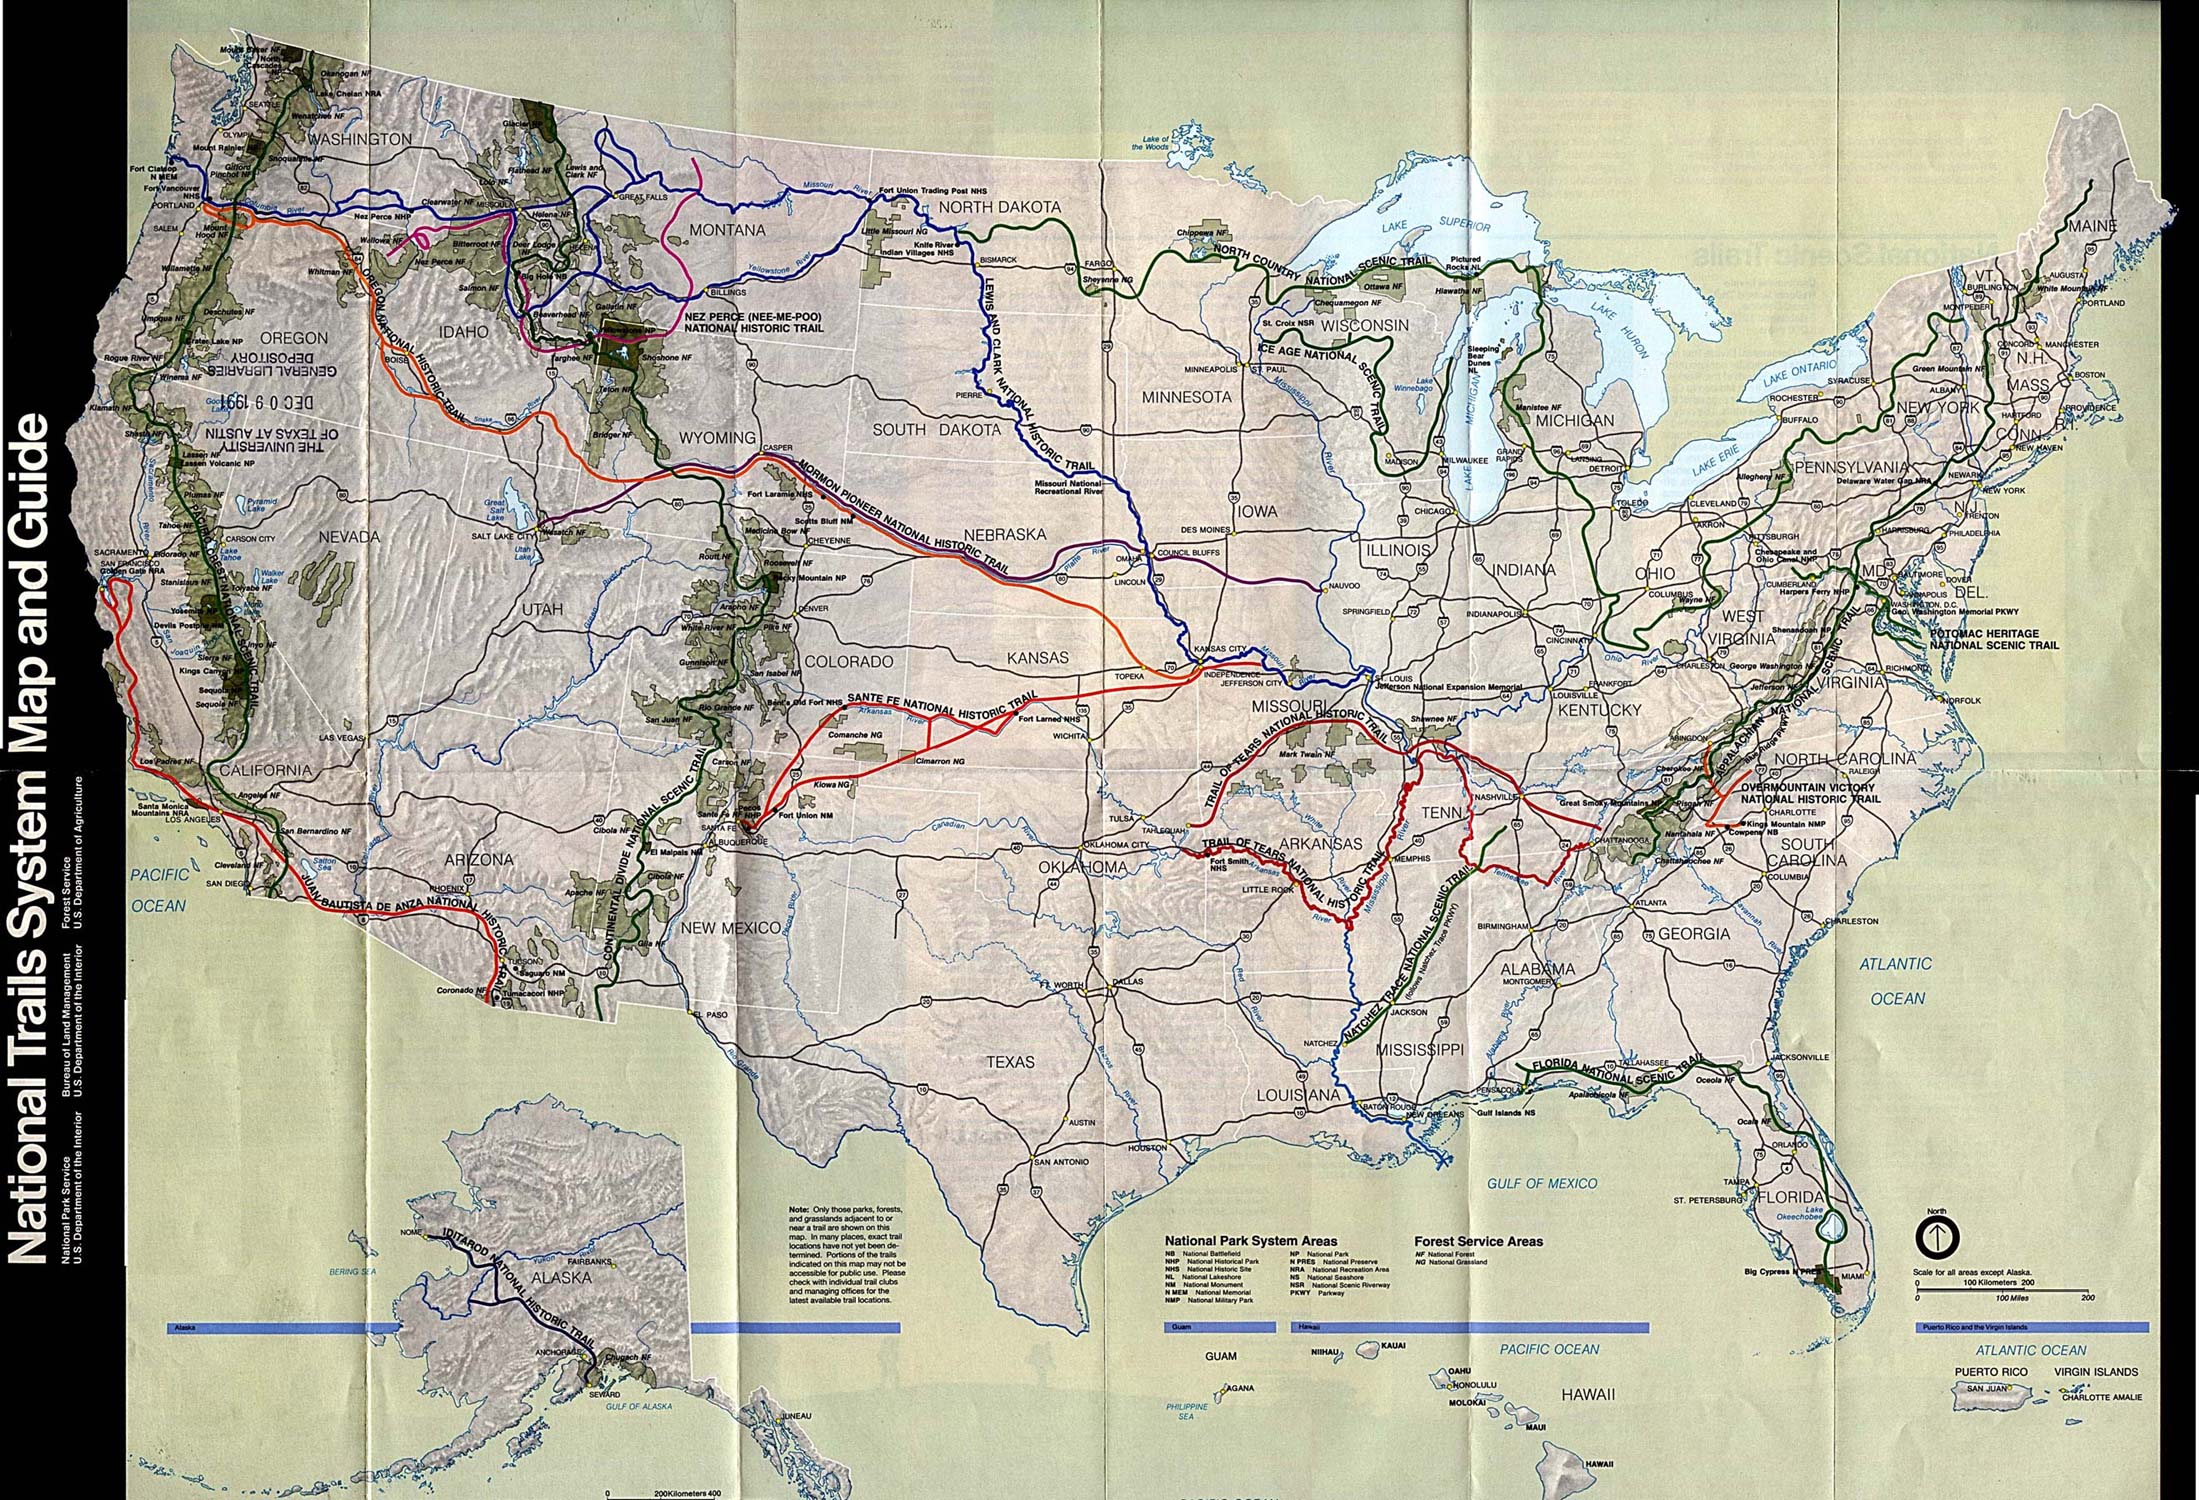 Reisenett: Maps of United States National Parks and Monuments